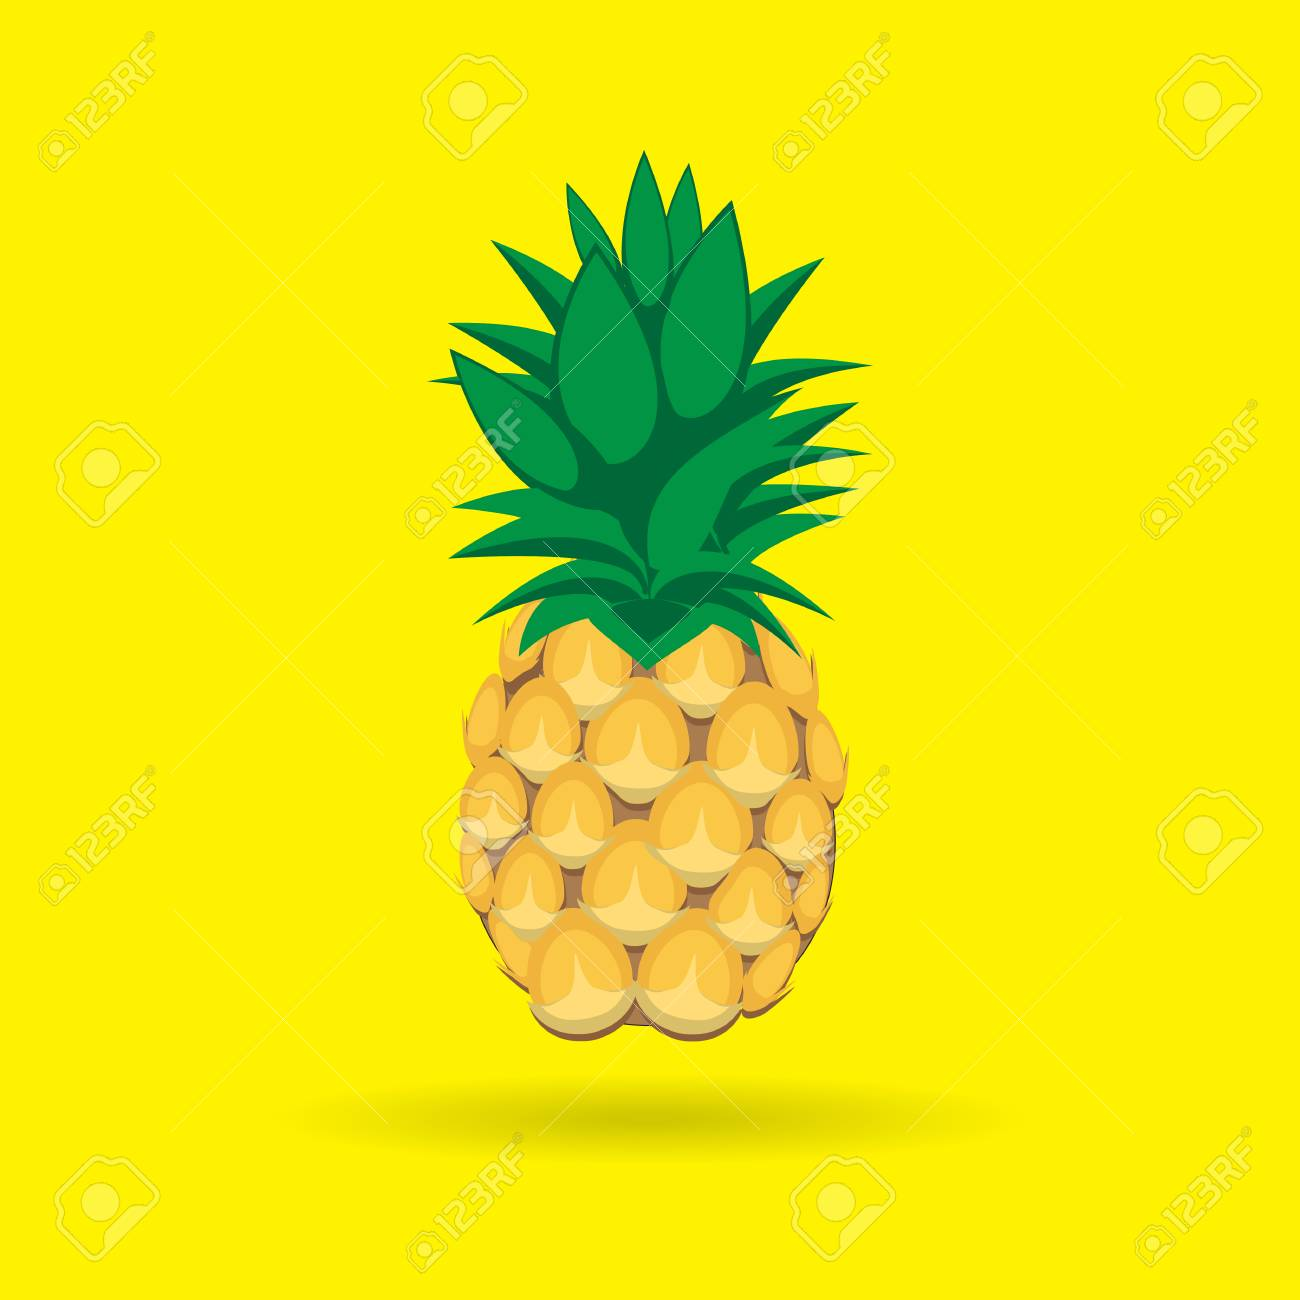 91992178 pineapple fruit contour abstract seamless pattern on yellow background for wallpaper pattern web blo